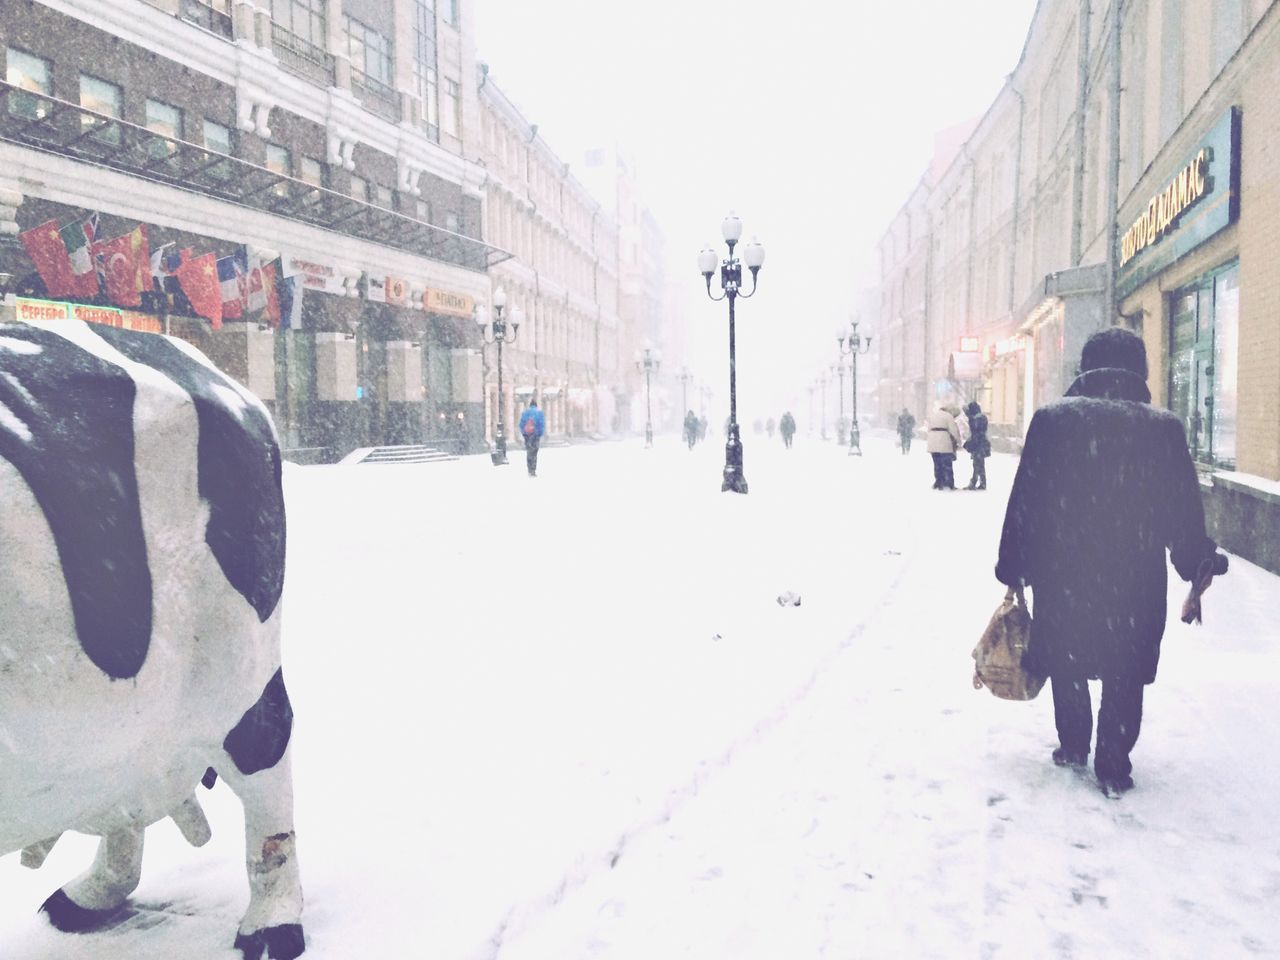 Russian Winter EyeEm Best Shots Streetphotography New Filters EyeEm 5.0 People Watching Snowing My Country In A Photo Deepfreeze Snapshots Of Life Women Around The World